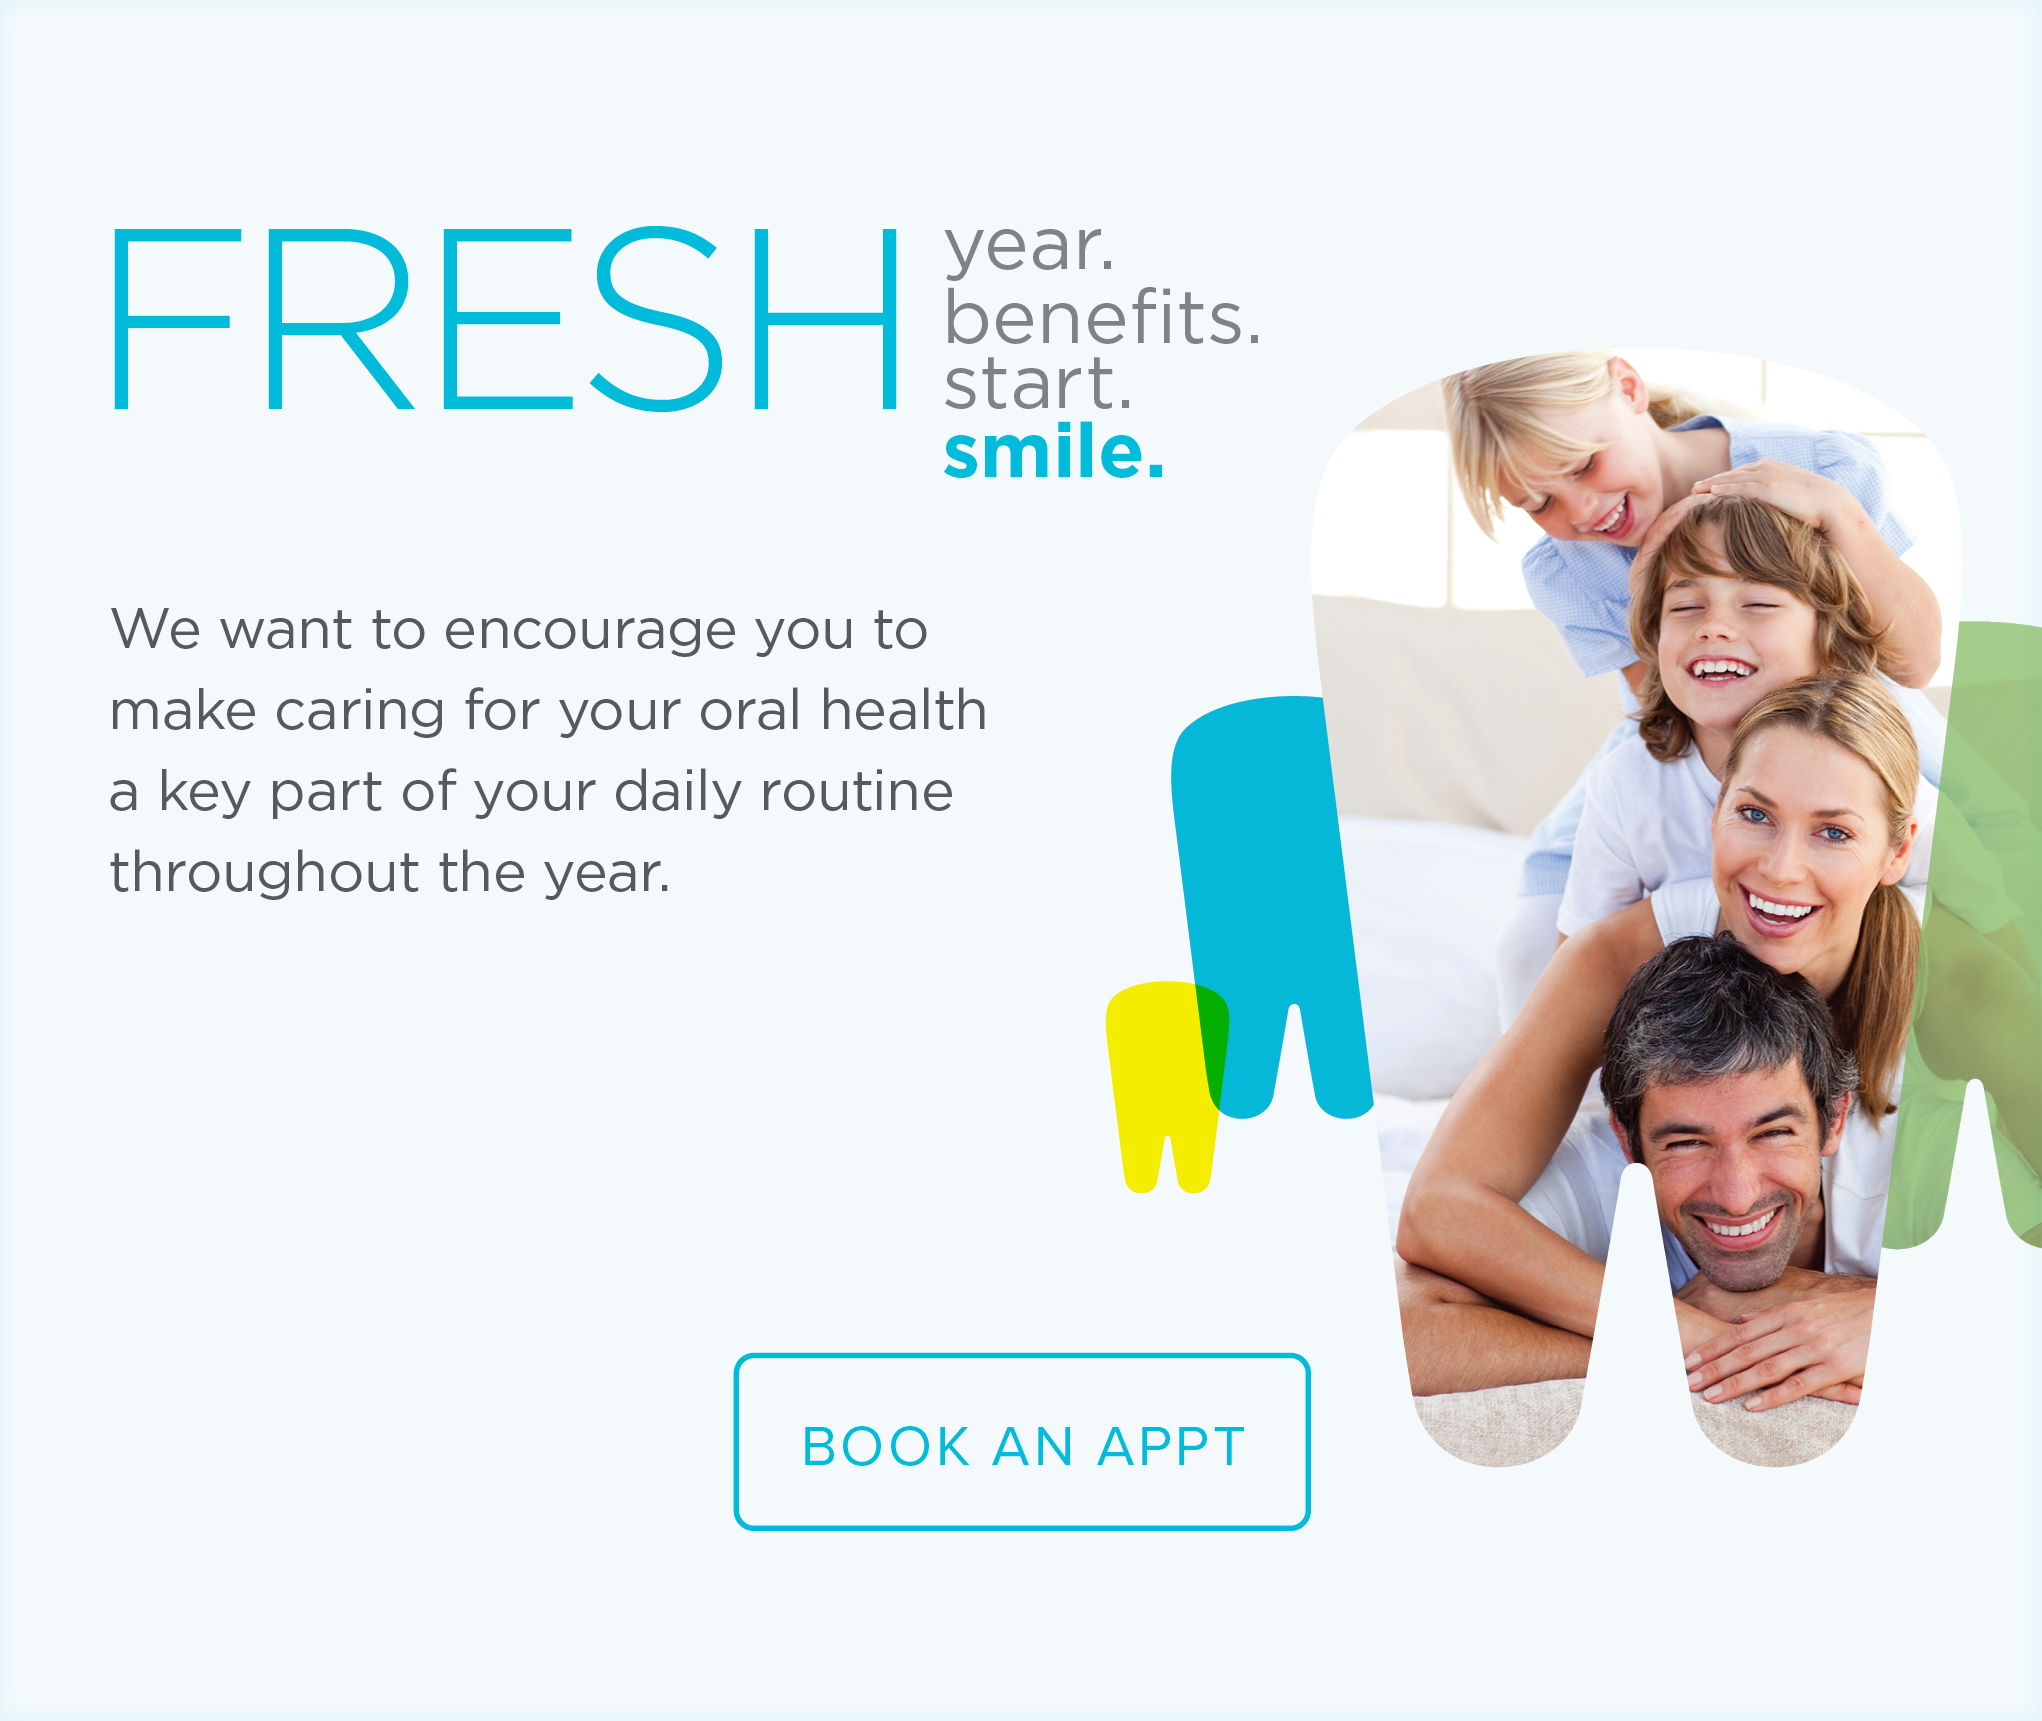 Mount Dora Modern Dentistry - Make the Most of Your Benefits